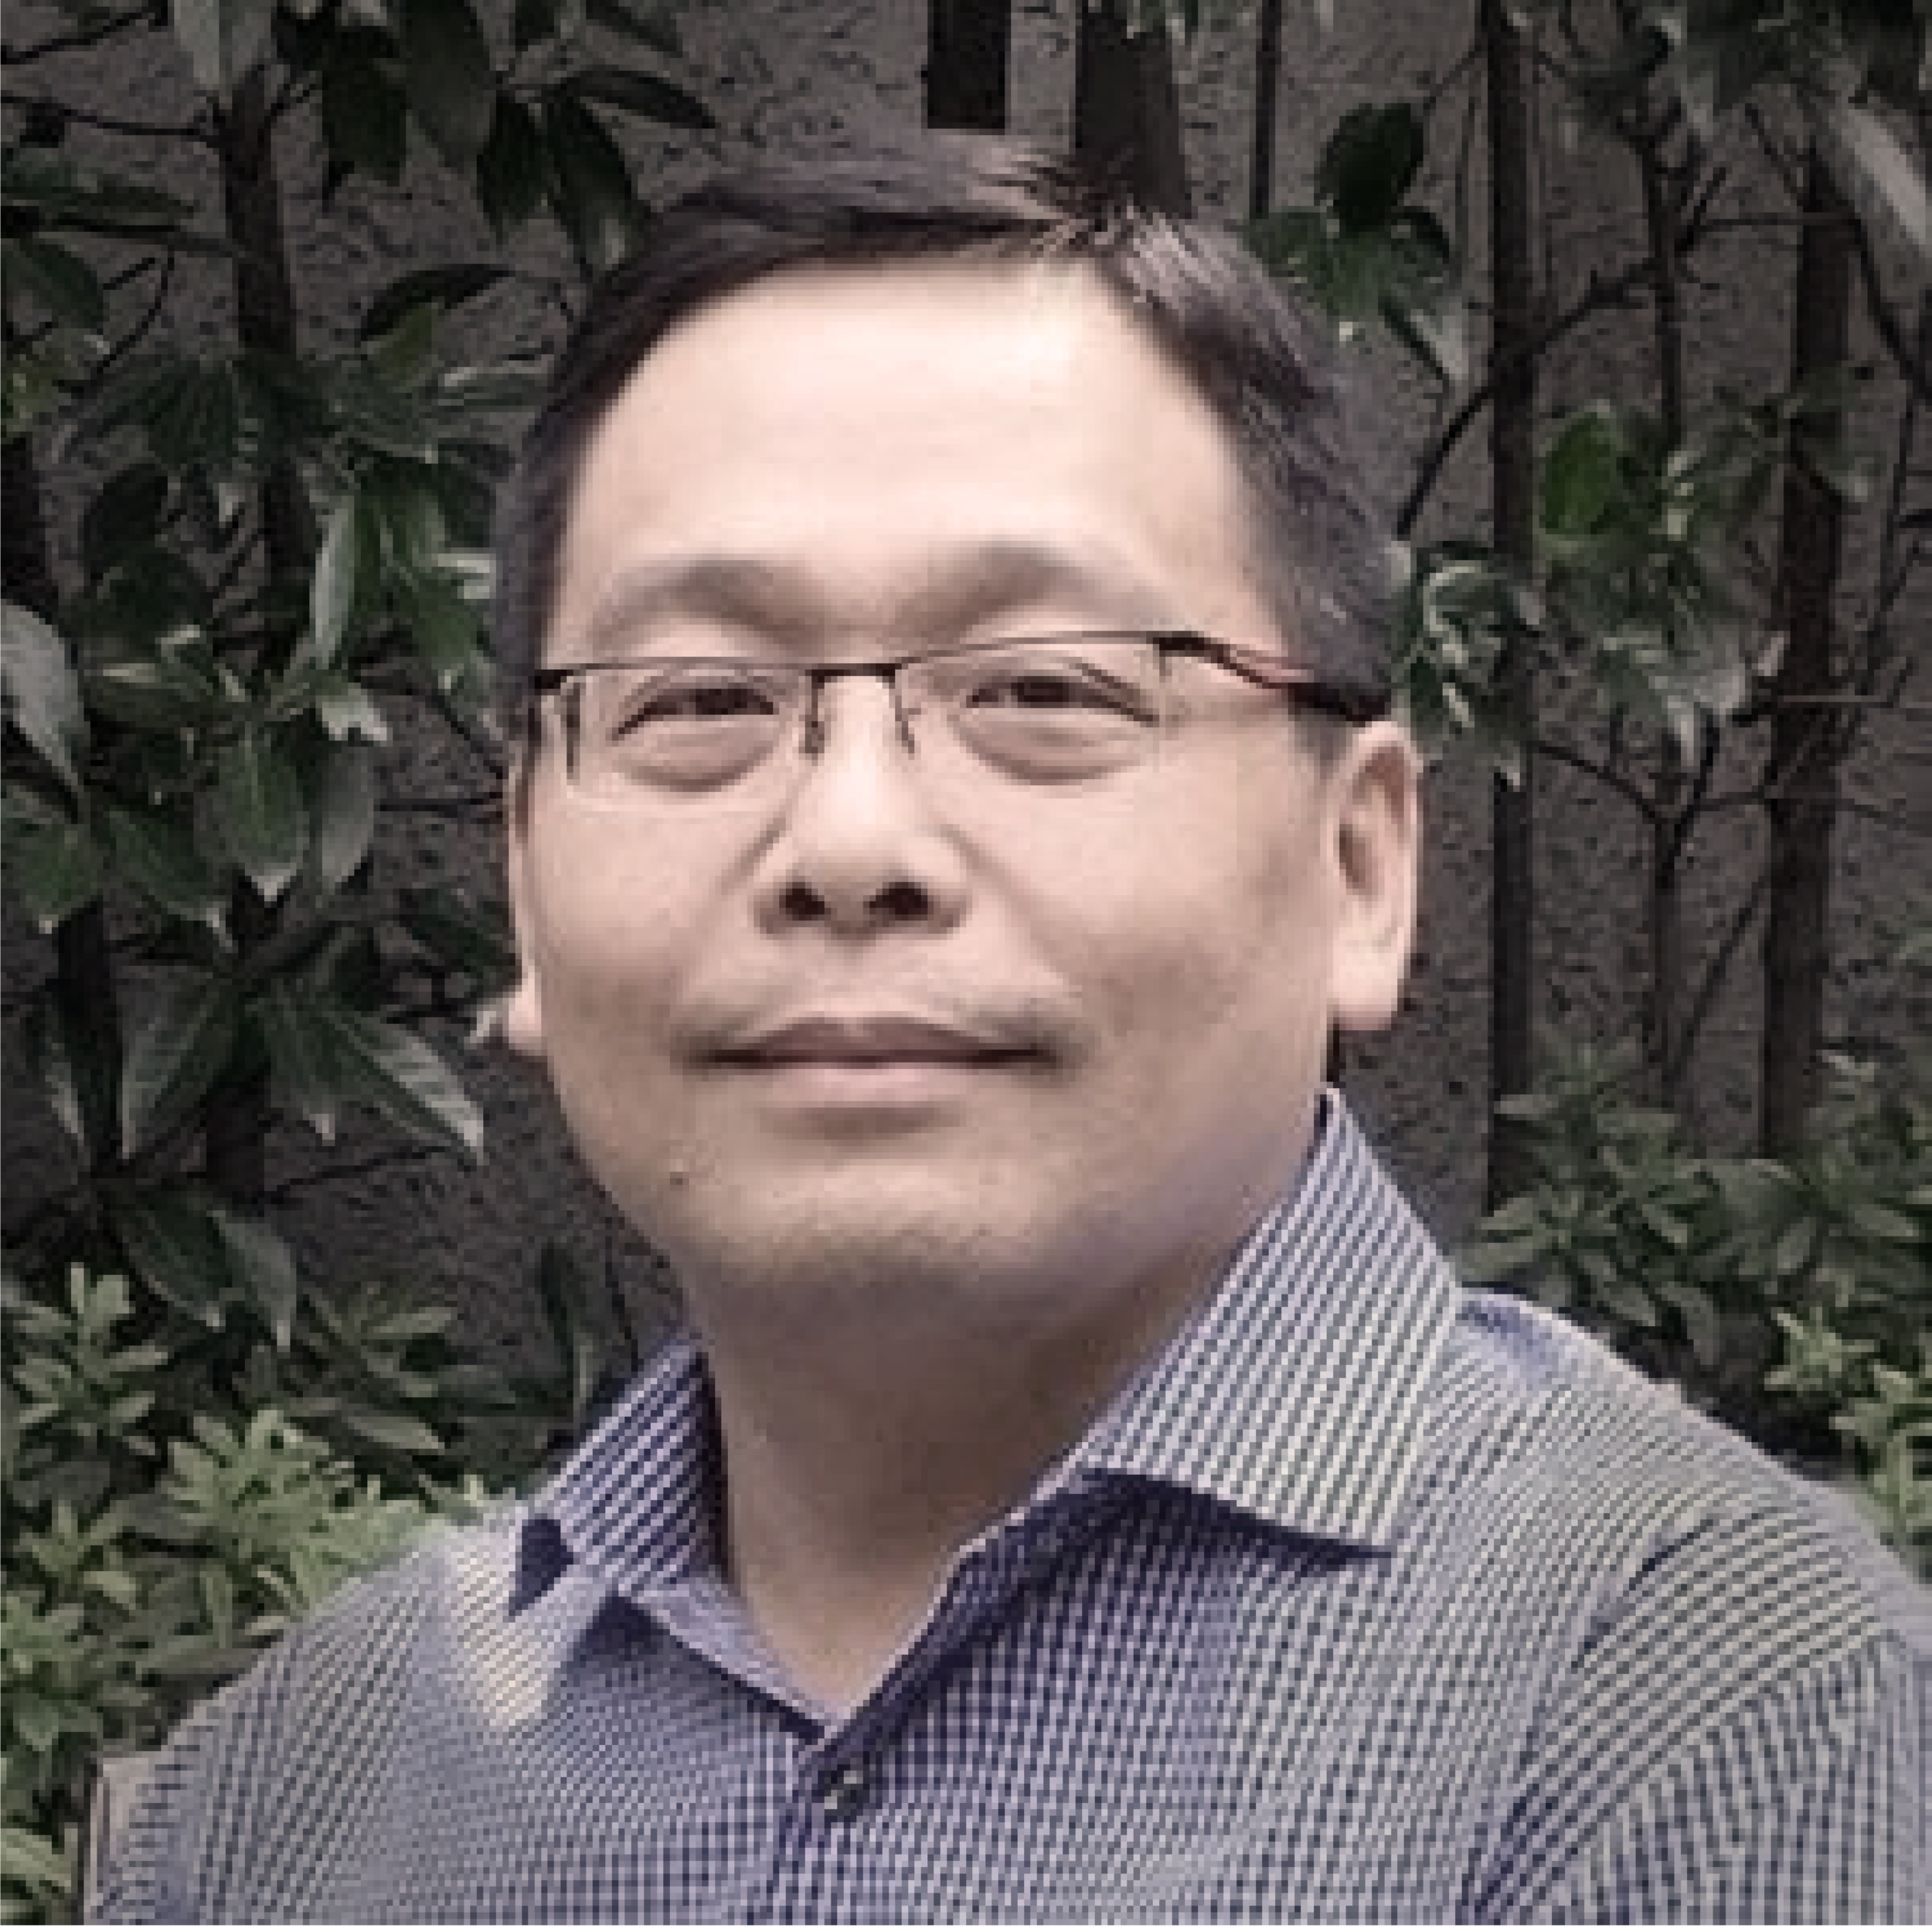 Copy of Ng Yi Pin(黄榆镔)<br>Co-founder and Managing Partner<br>of Yunqi Partners (云启创投)